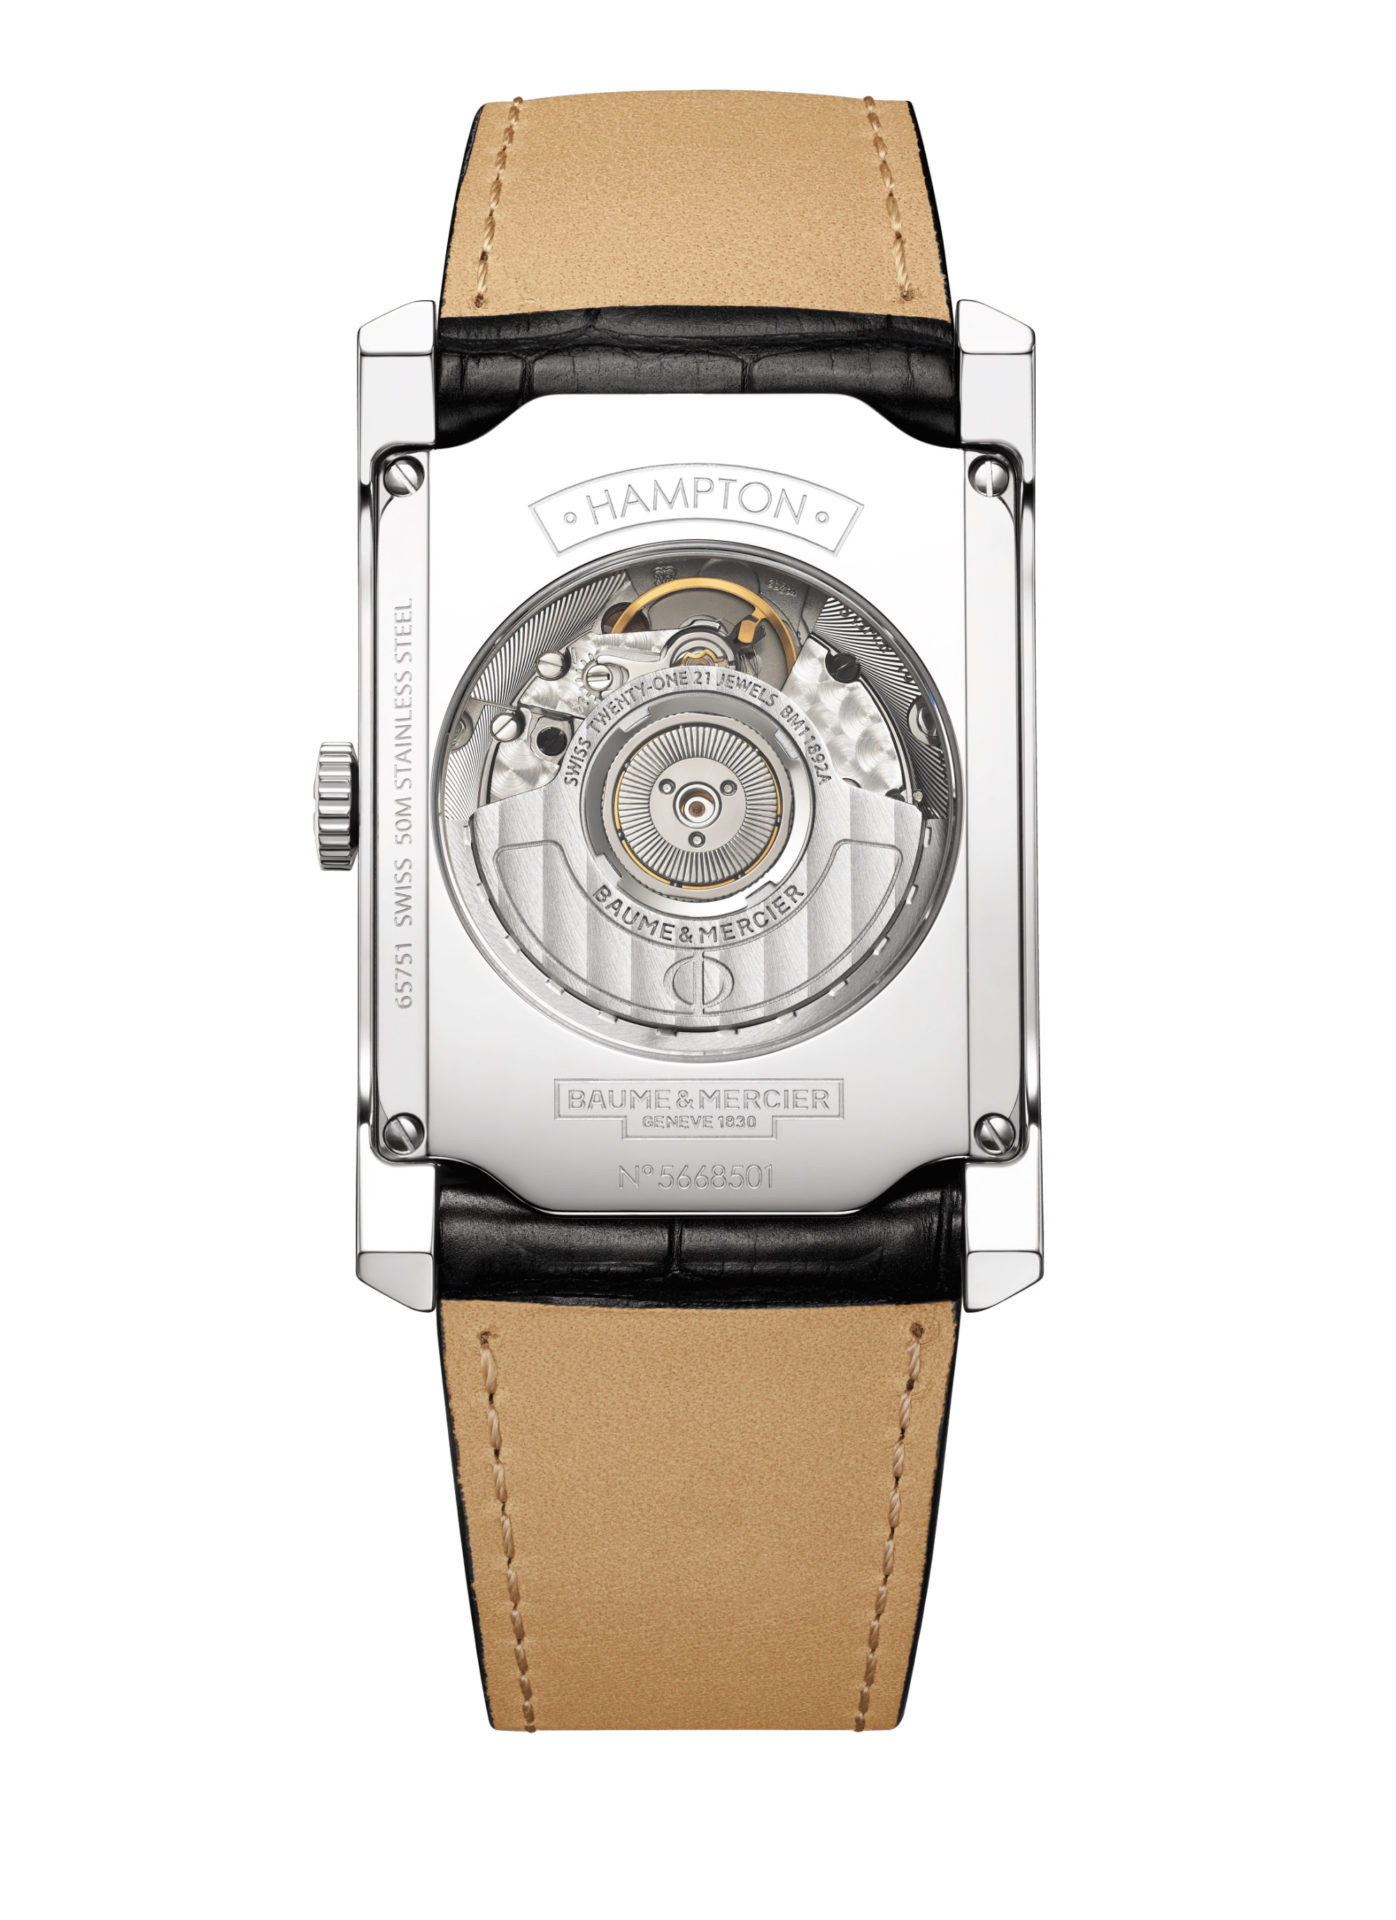 Baume-&-Mercier-Hampton-10155*-Hall-of-Time